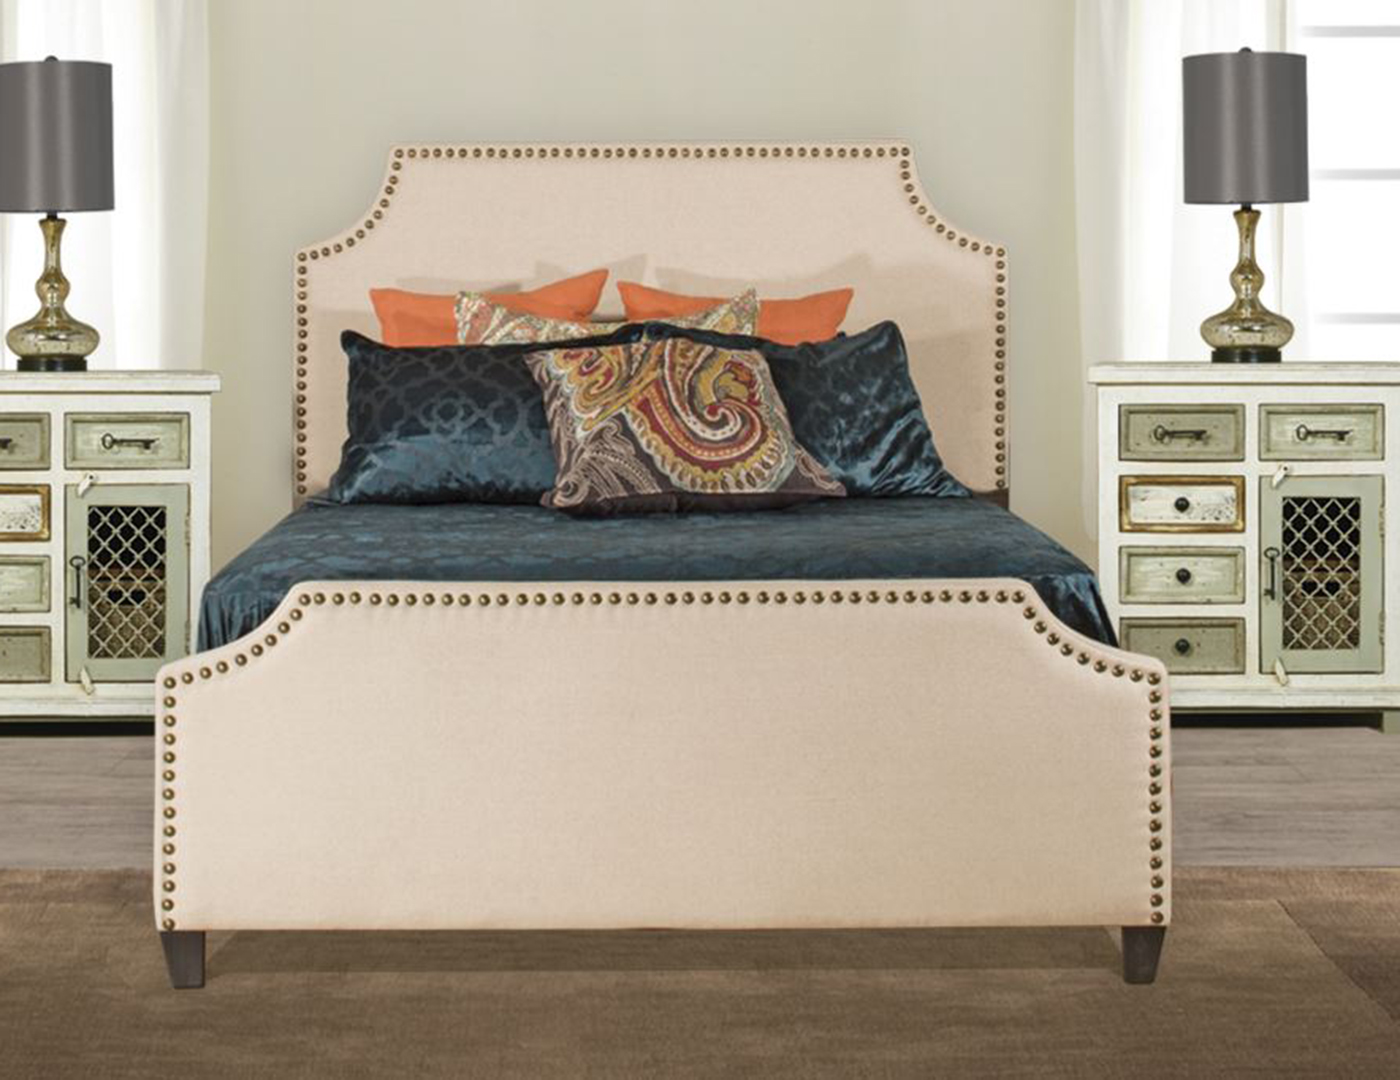 Dekland King Upholstered Bed